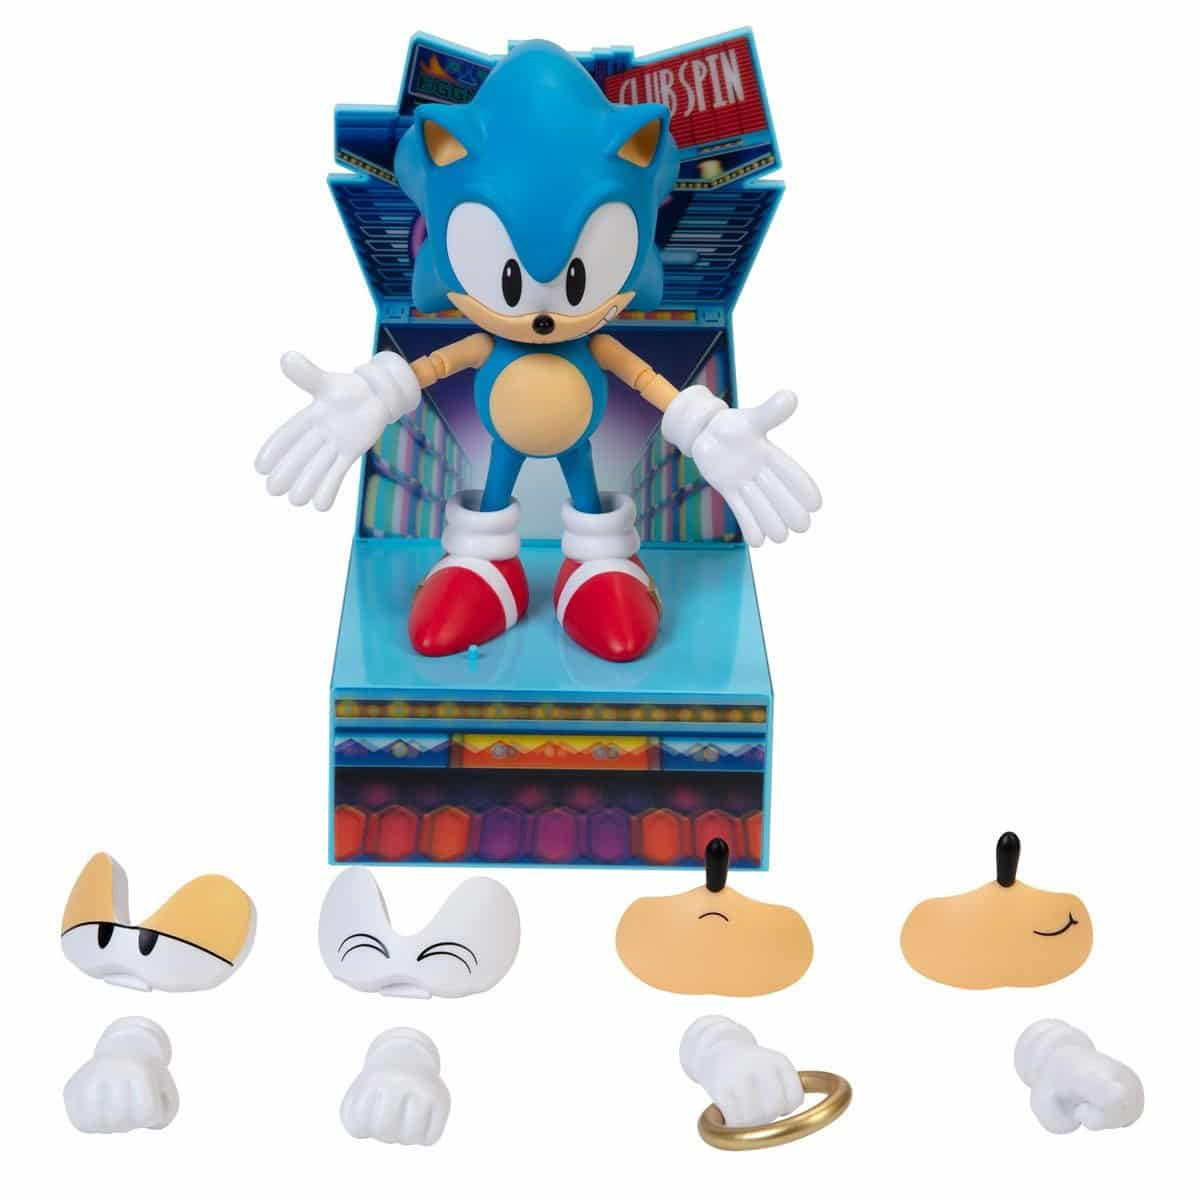 Sonic The Hedgehog 30th Anniversary  Figure Harkens Back to Good Ol' Days